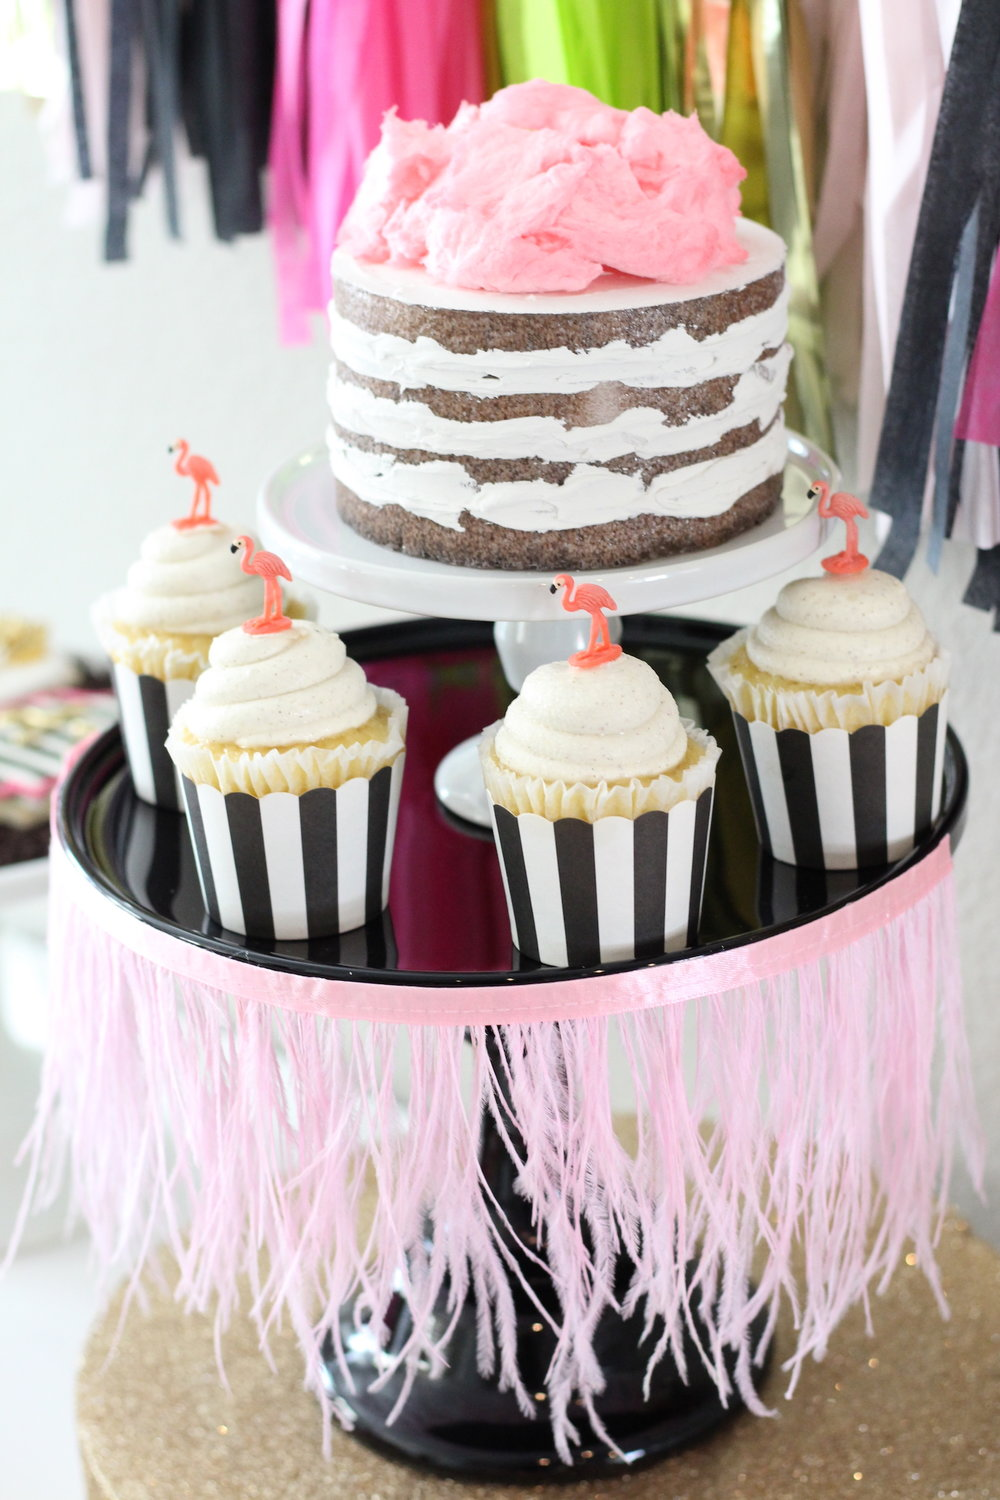 Party Inspiration for a Let's Flamingo Bachelorette Party or Bridal Shower - a fun flamingo party theme in pink, white, black, green and gold. Rustic naked cake topped with cotton candy and cupcakes topped with plastic flamingos. As seen on www.BrendasWeddingBlog.com